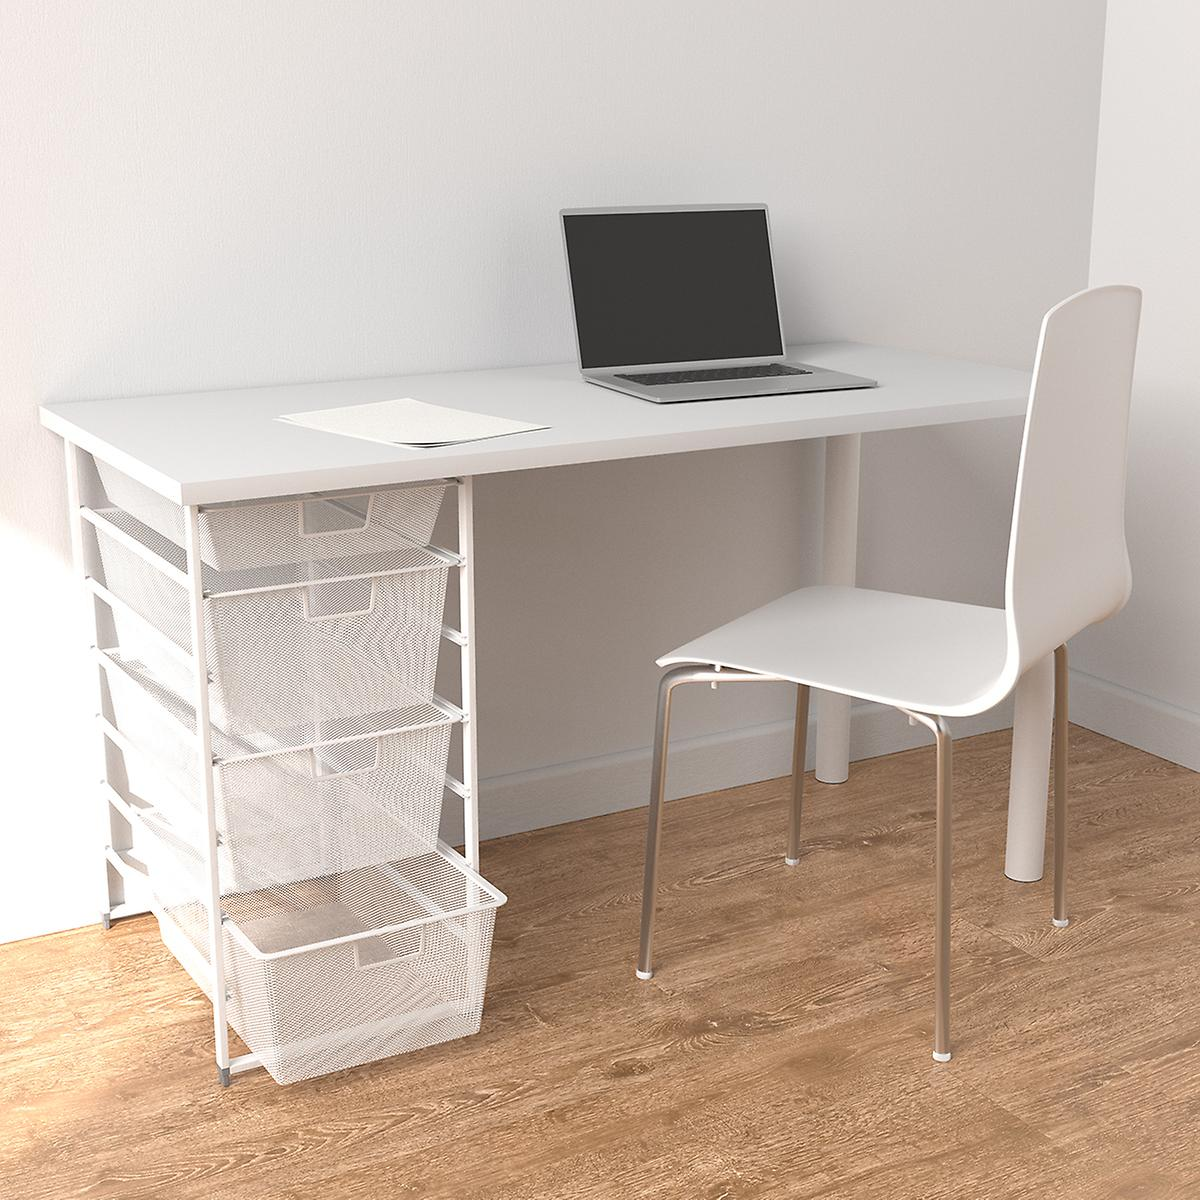 Elfa White Desk with Drawers